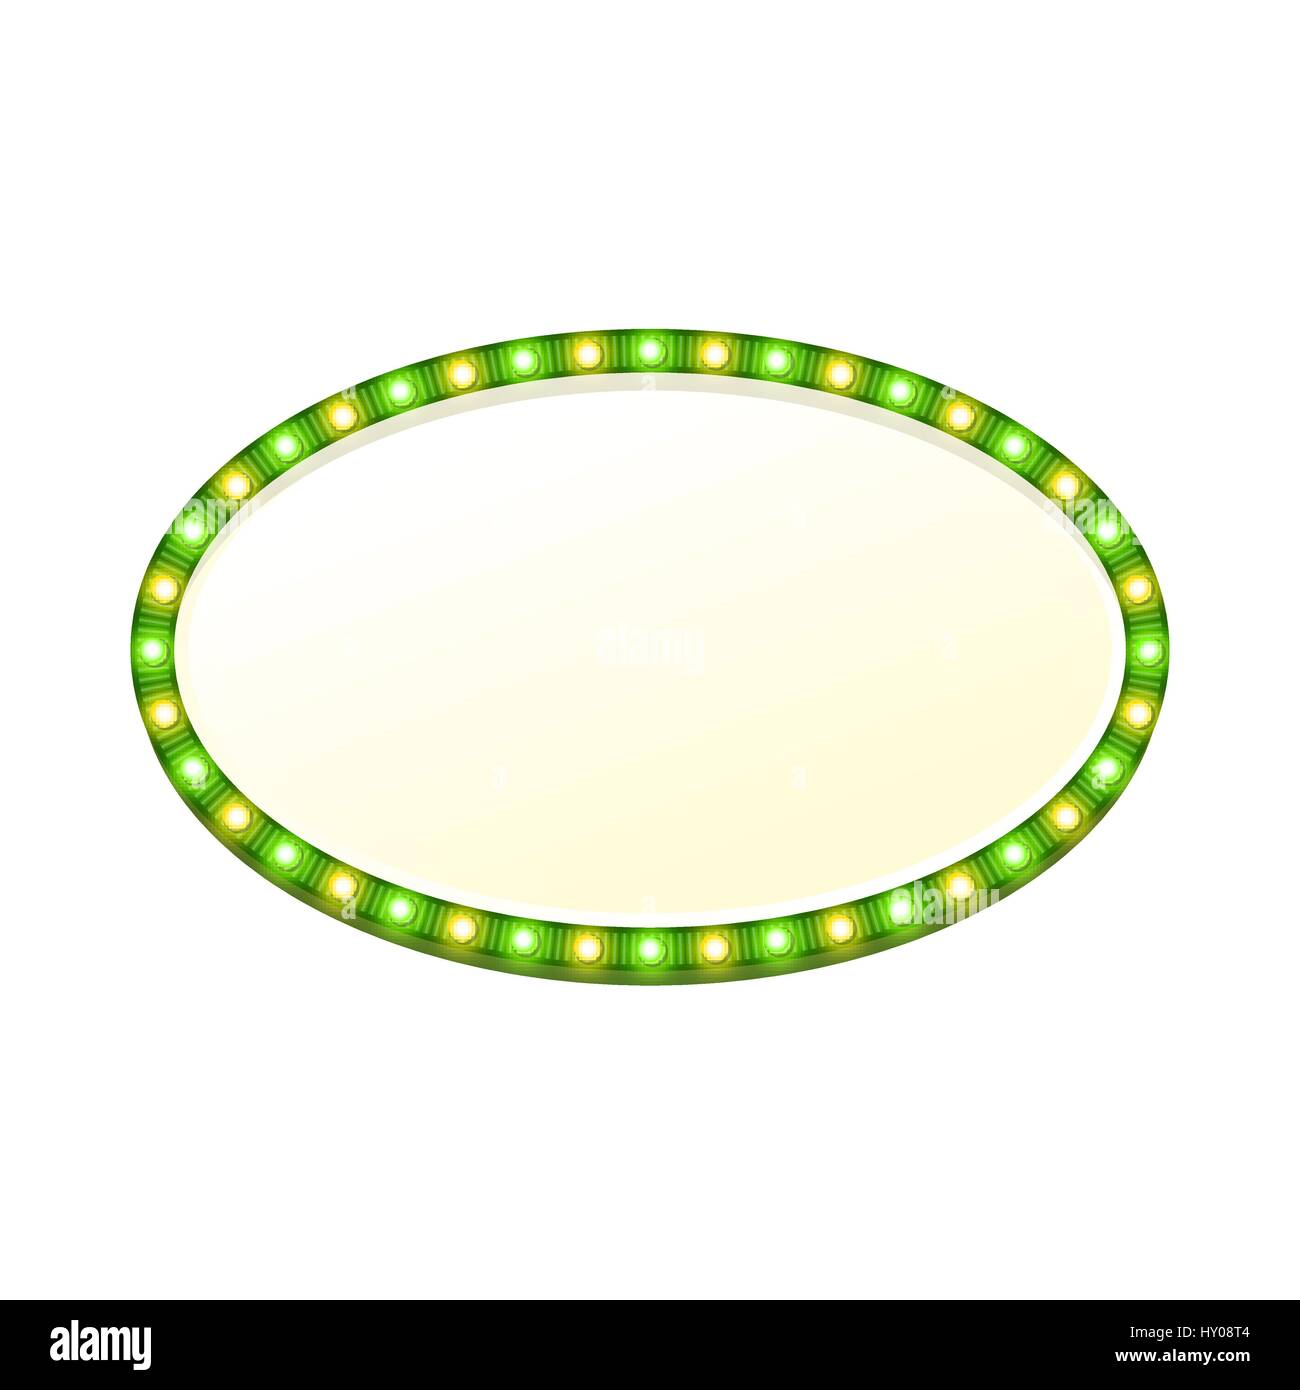 Blank 3d oval retro light banner with shining lights. Green sign with green and yellow bulbs and bright blank space - Stock Vector